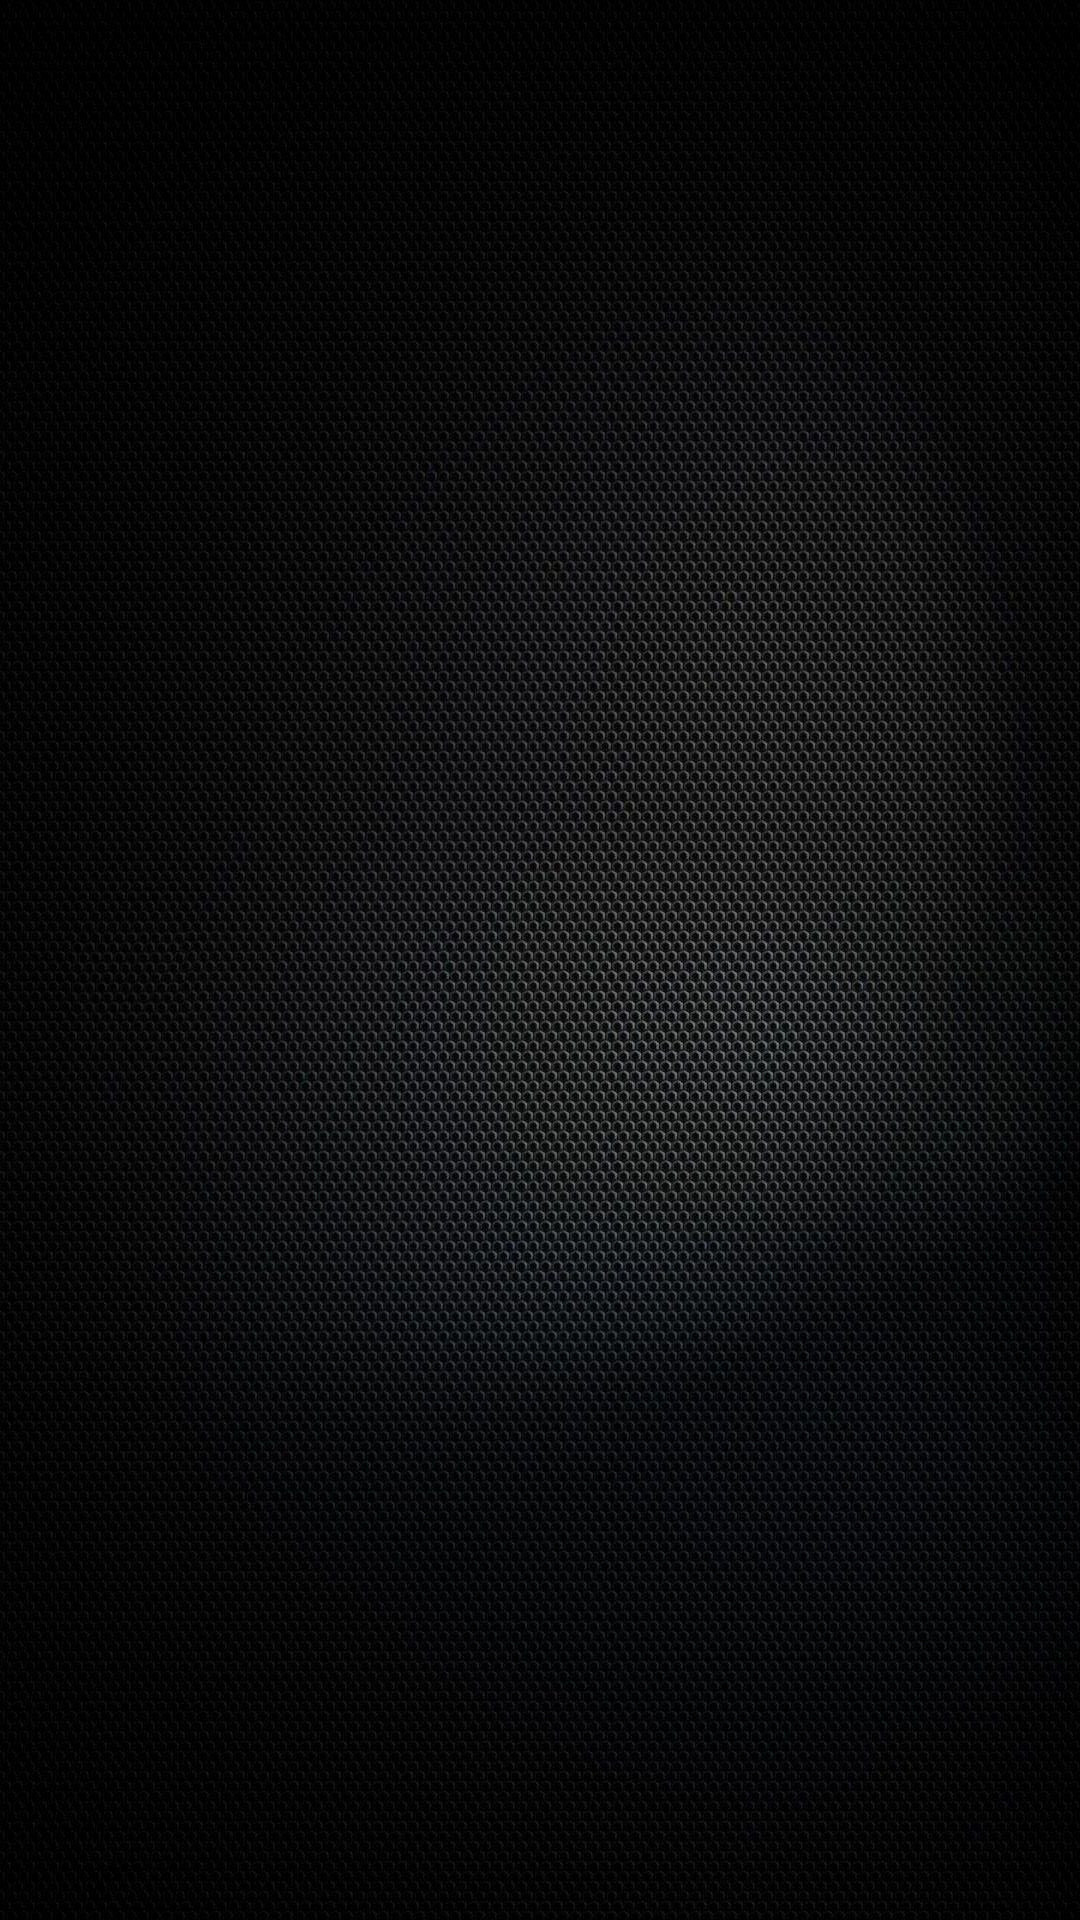 Solid Black Wallpapers 77 Background Pictures